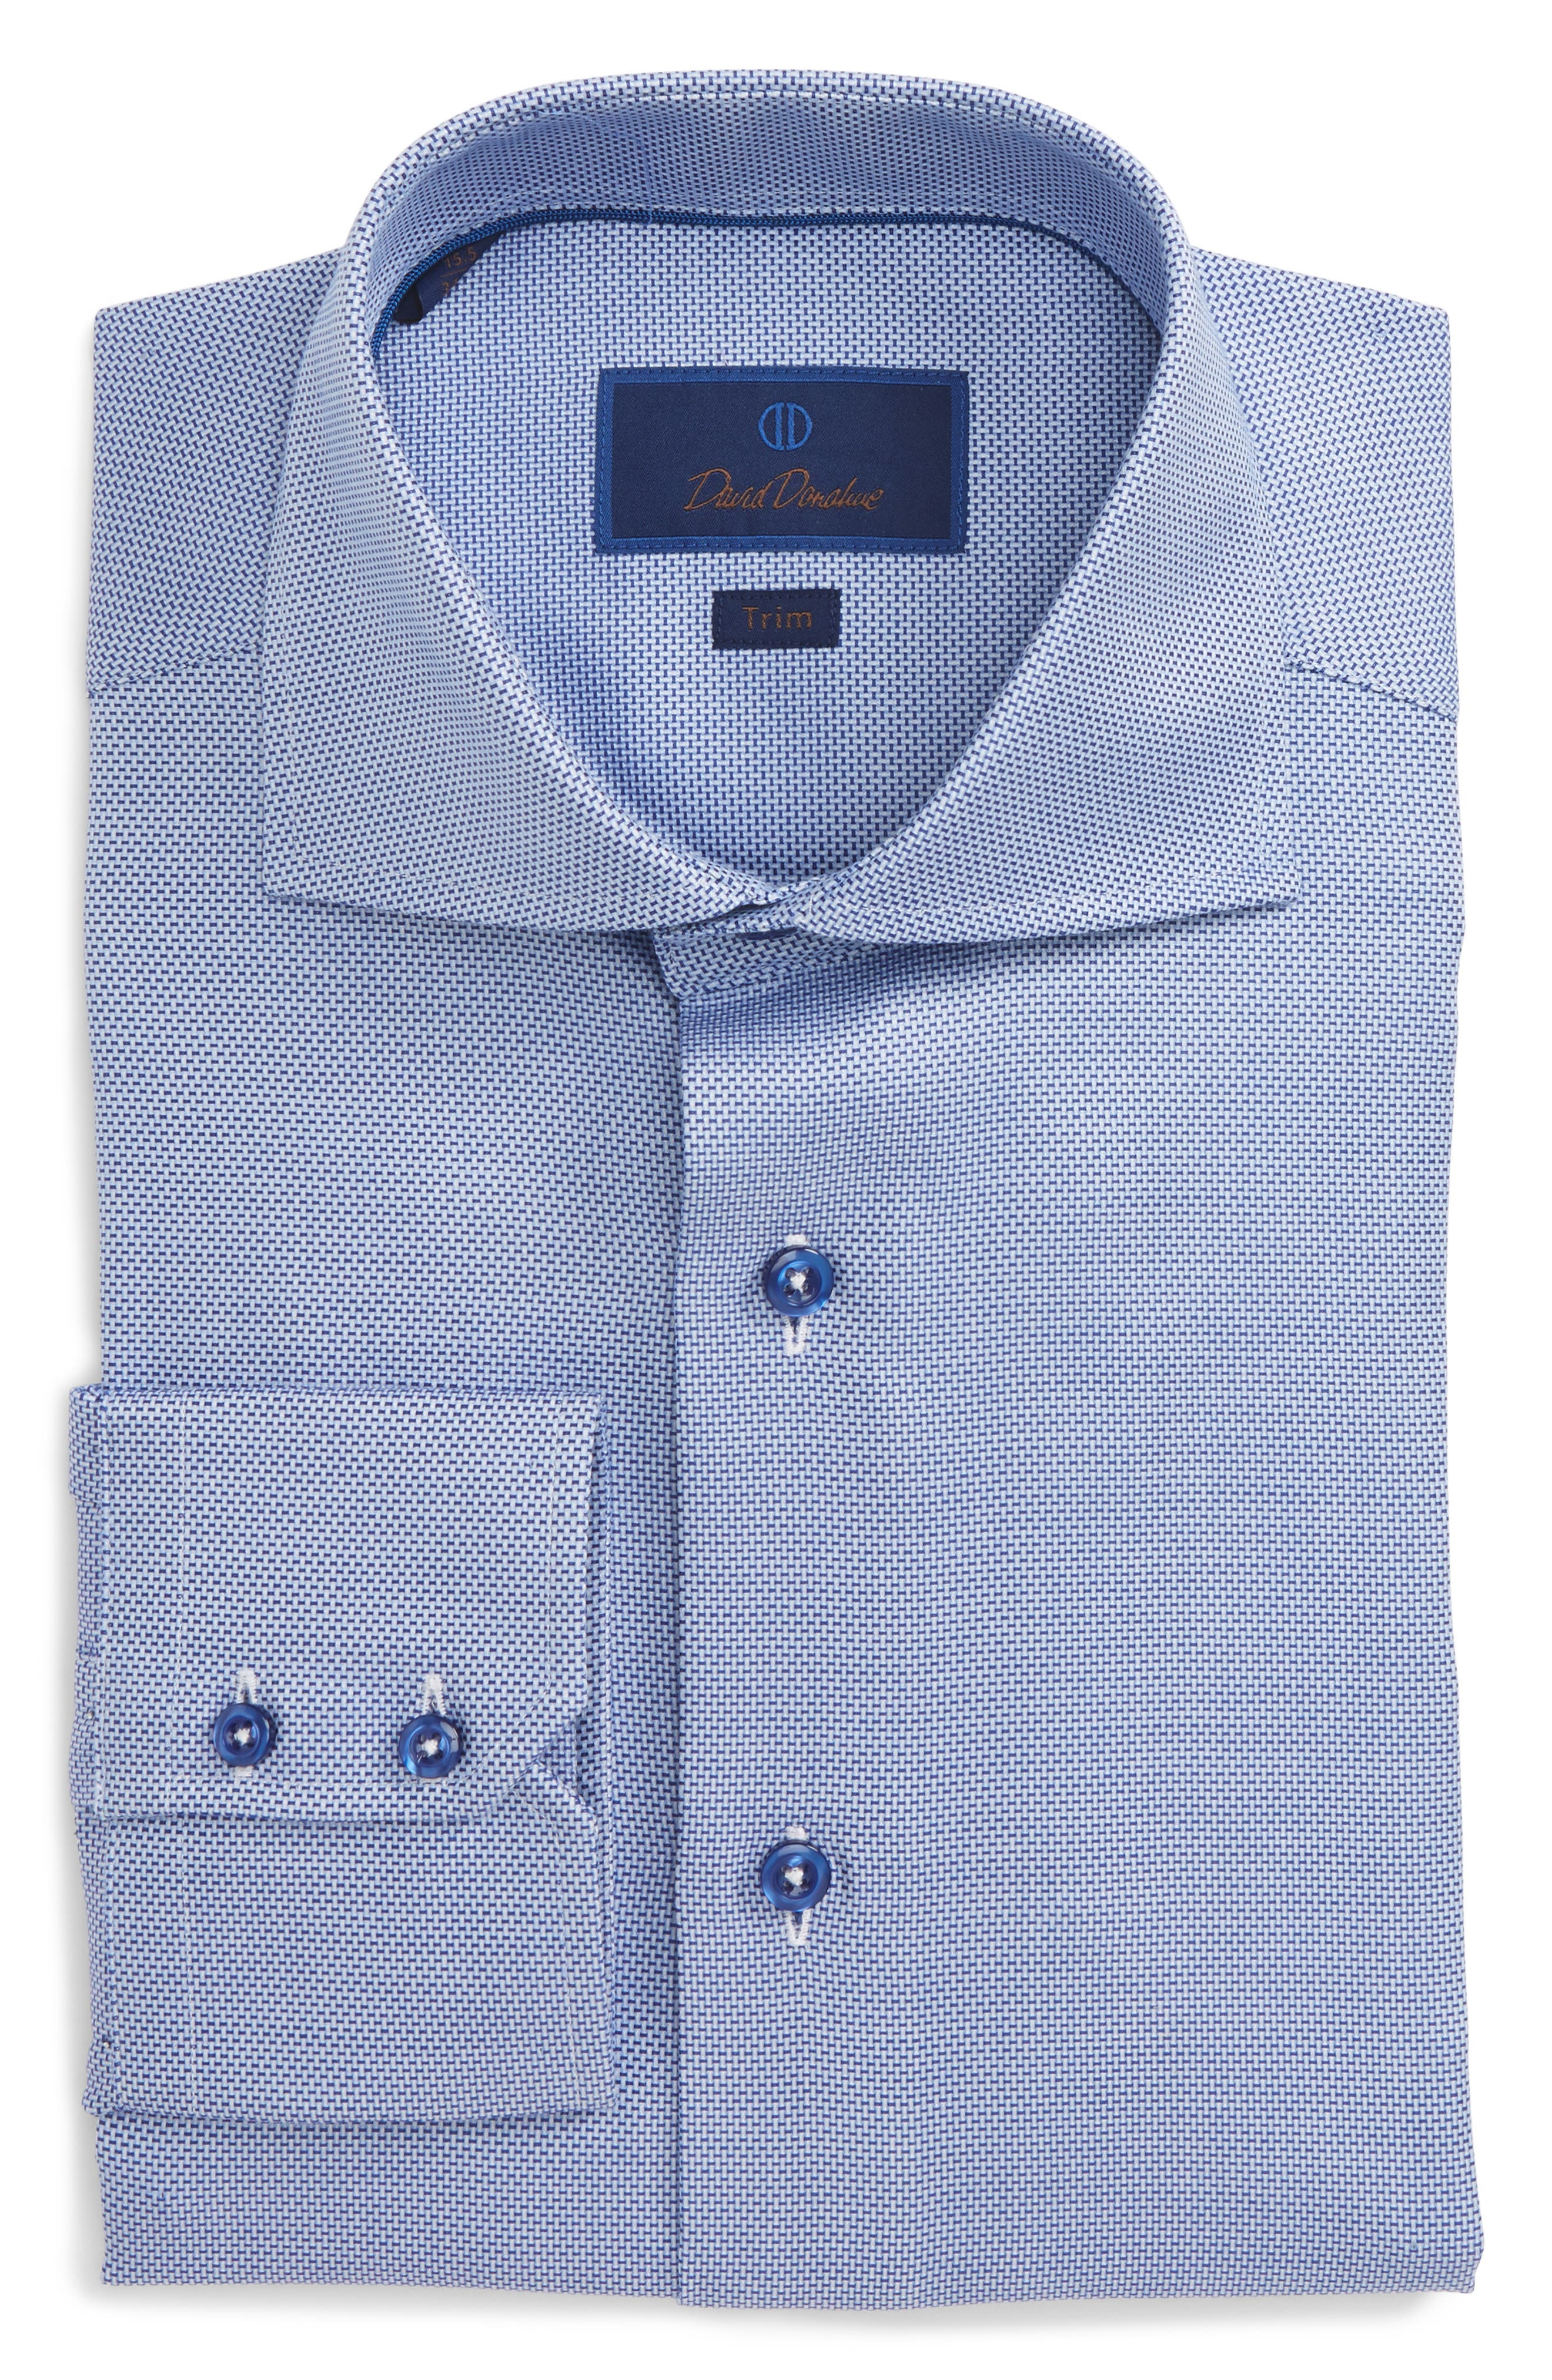 Main Image - David Donahue Trim Fit Solid Dress Shirt